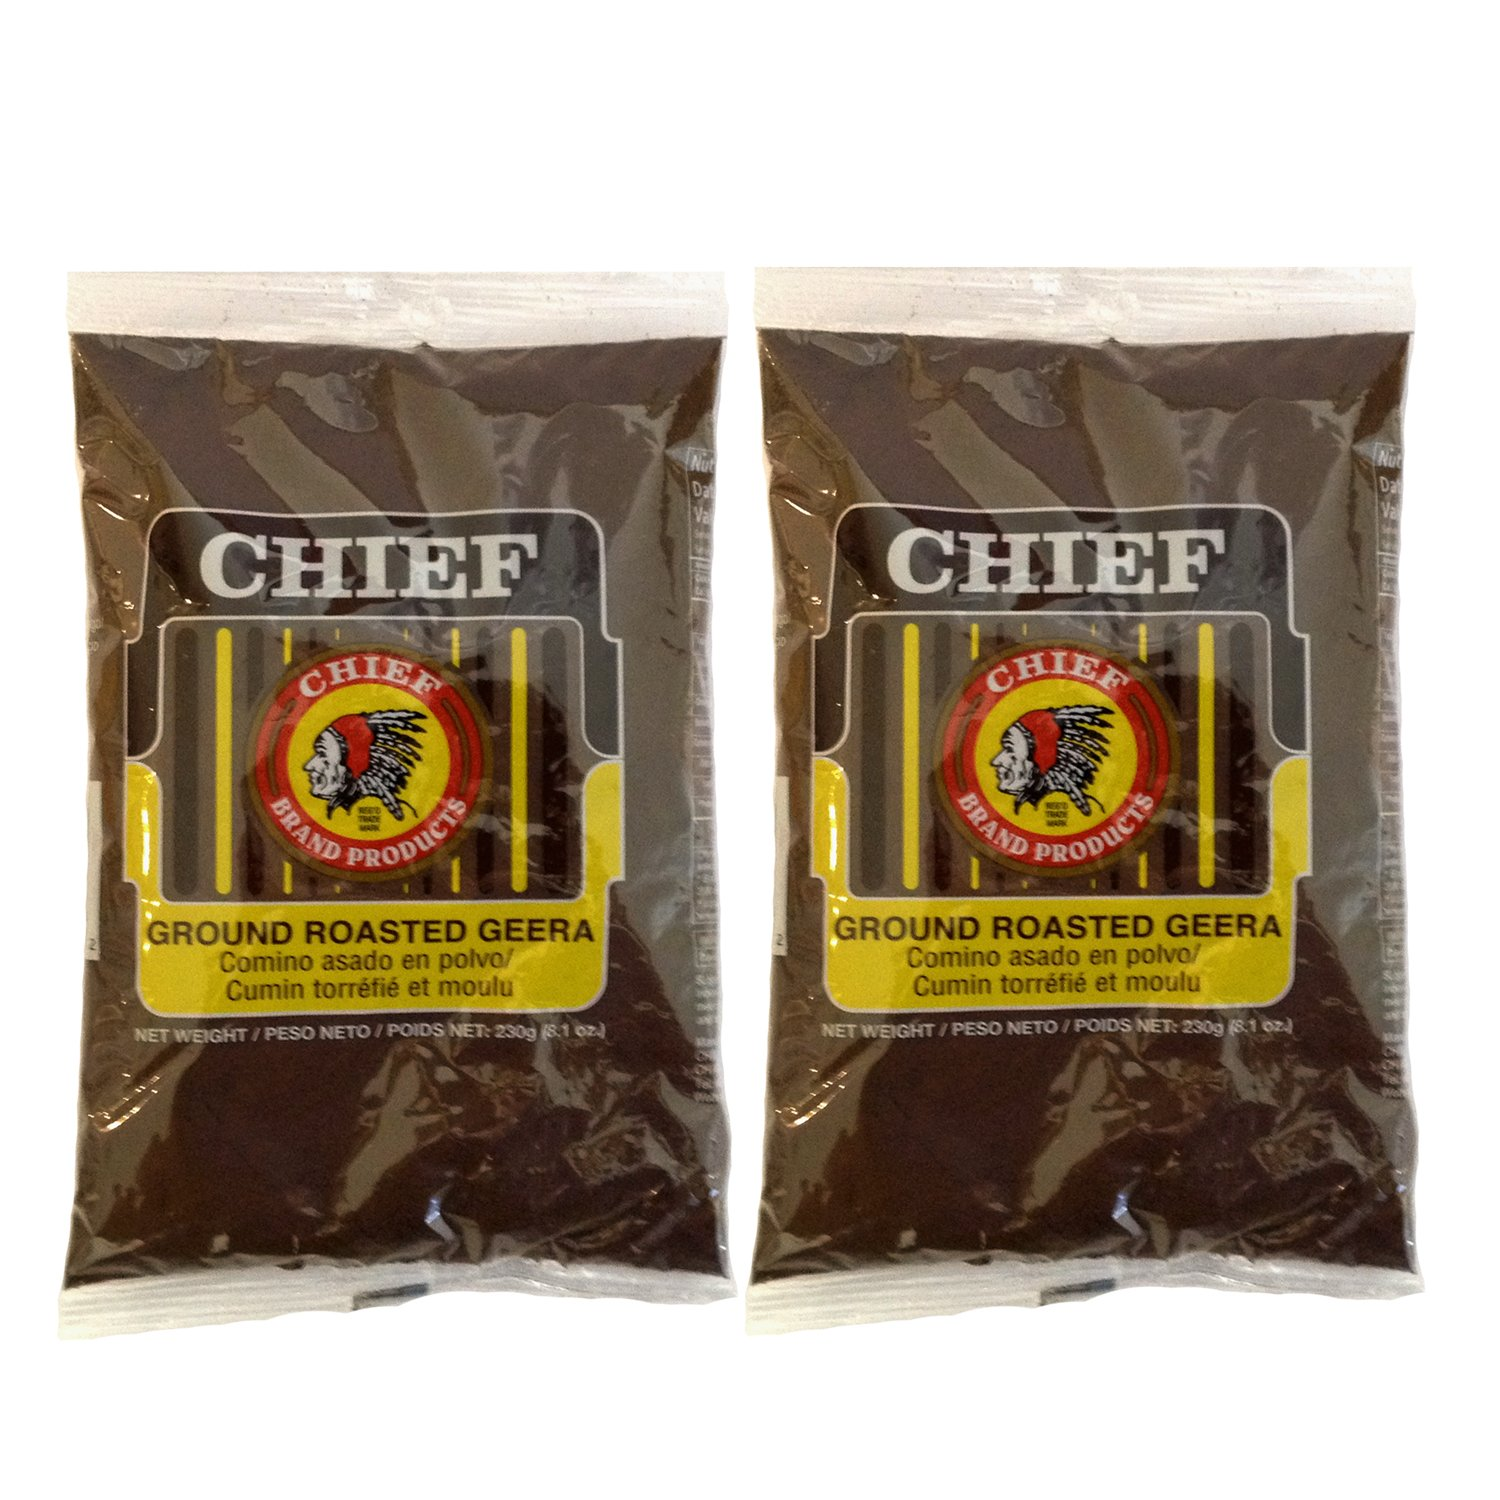 Chief Roasted Geera Ground Cumin Seeds 230g 8.1oz (Pack of 2)